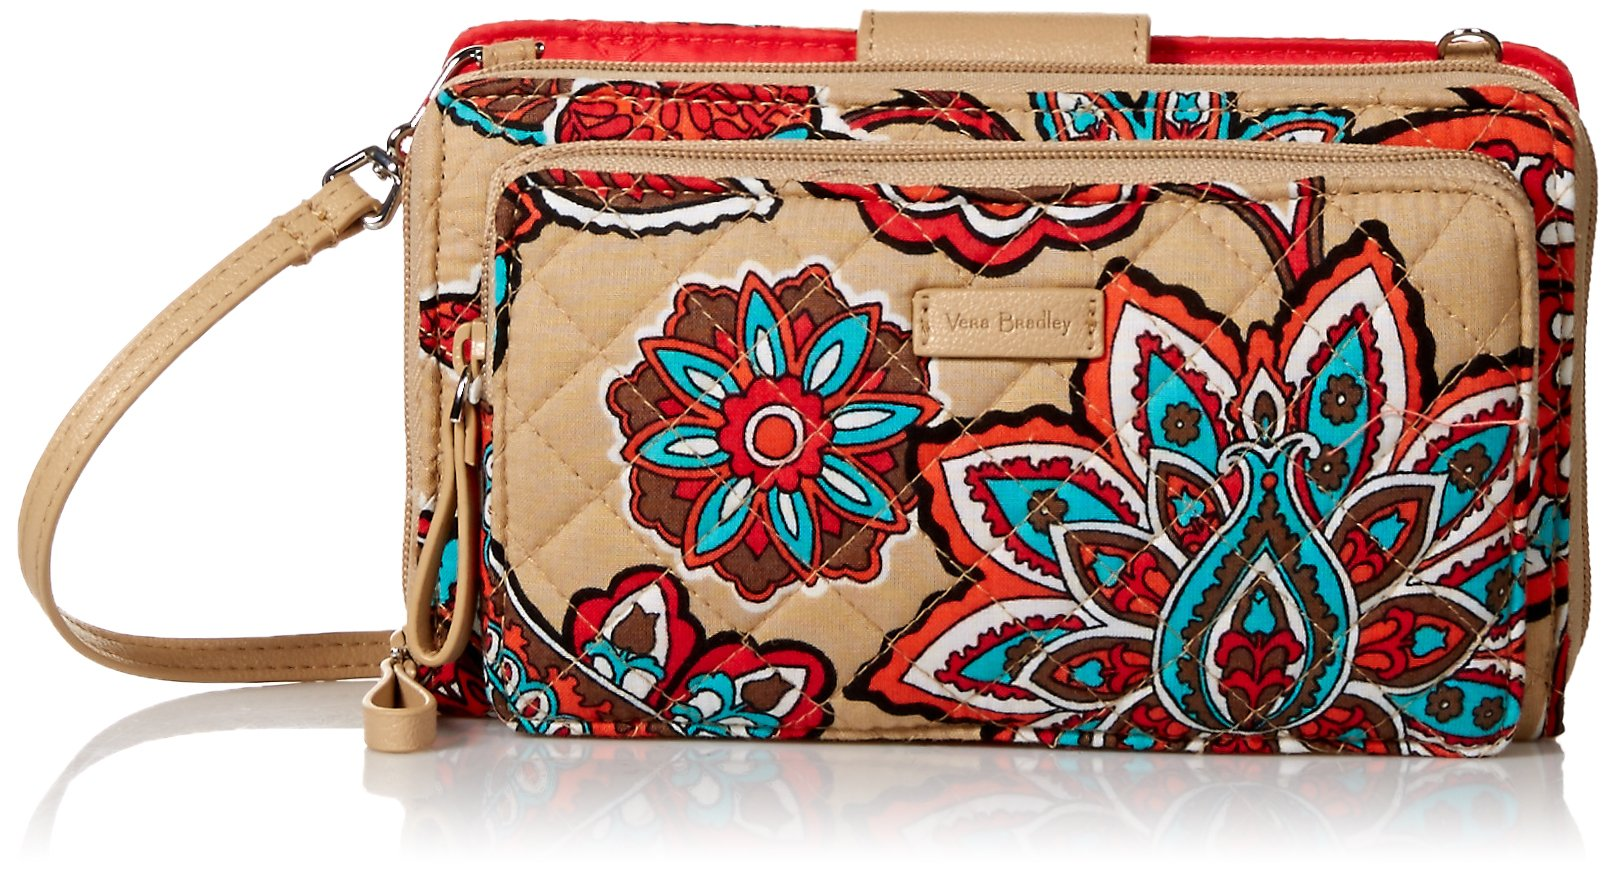 Vera Bradley Iconic Deluxe All Together Crossbody, Signature Cotton, Desert Floral